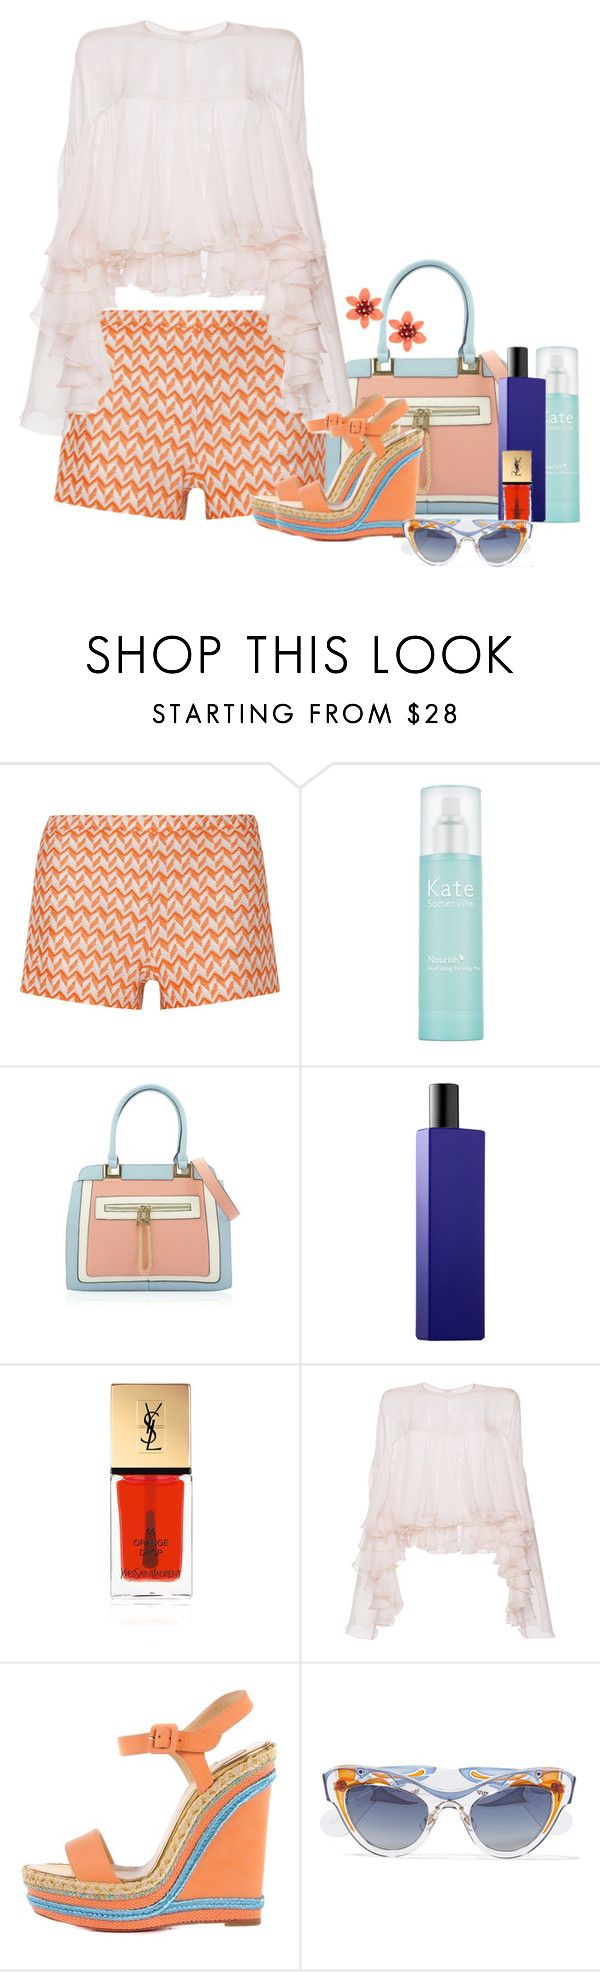 """""""Untitled #6548"""" by lisa-holt ❤ liked on Polyvore featuring Missoni, Kate Somerville, Histoires De Parfums, Yves Saint Laurent, Philosophy di Lorenzo Serafini, Christian Louboutin, Miu Miu and Kate Spade"""